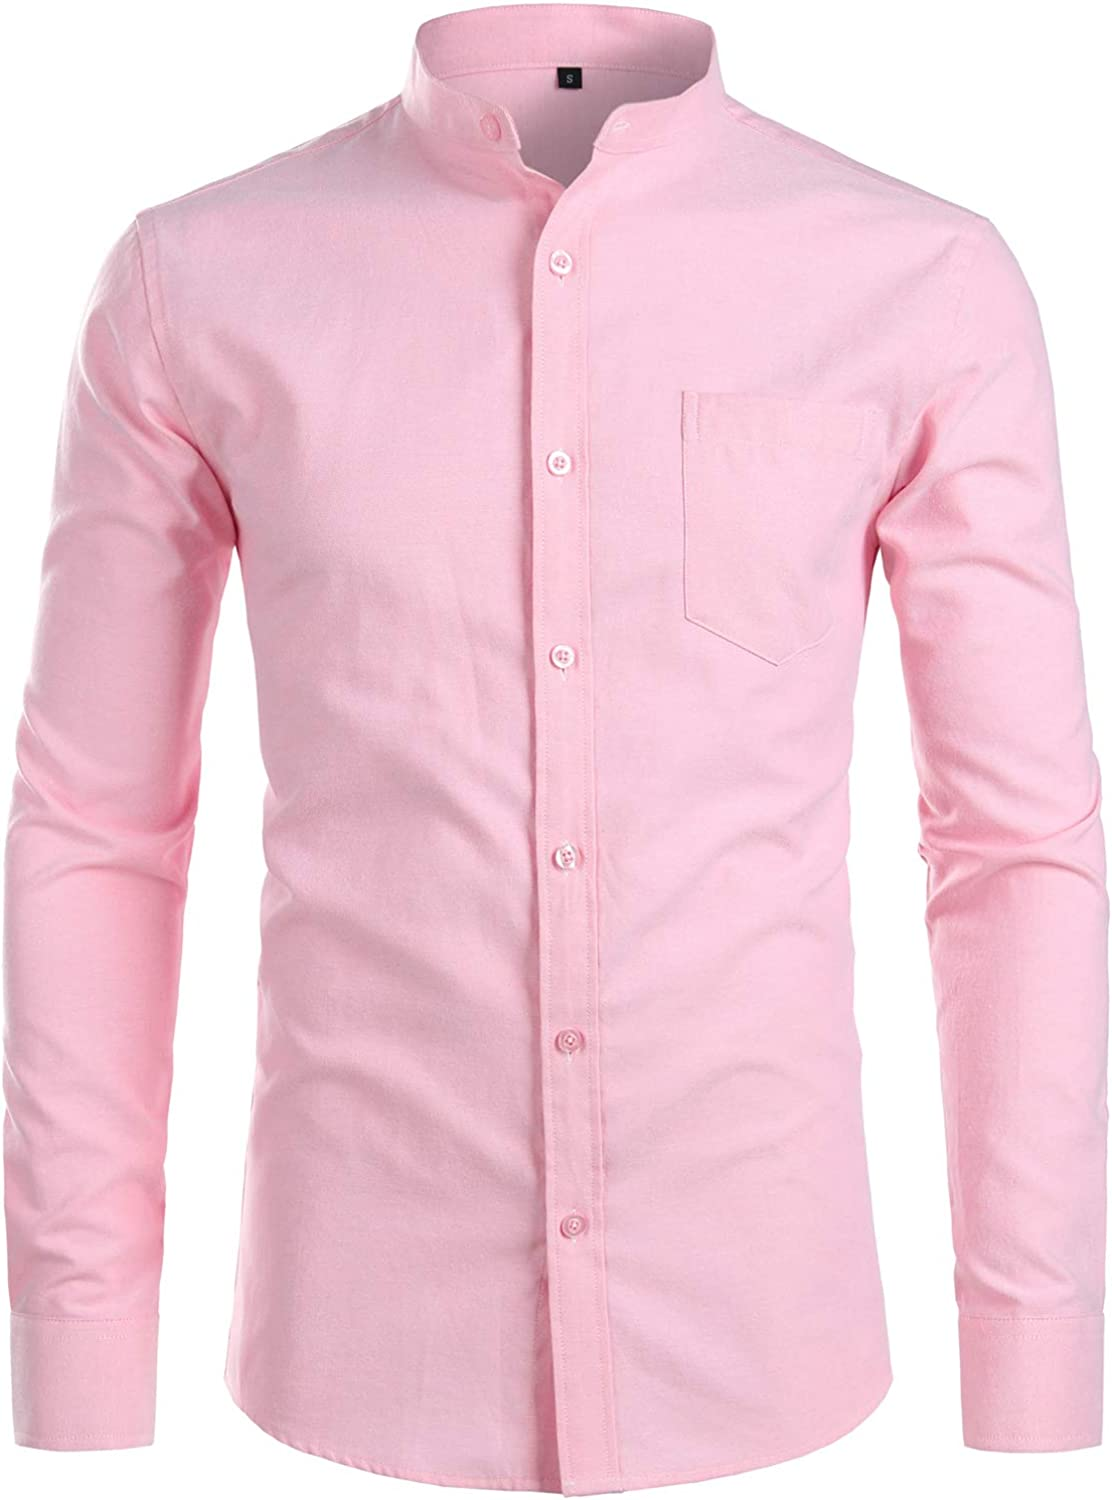 ZEROYAA Men's Hipster Casual Slim Fit Long Sleeve Button Down Oxford Shirts with Chest Pocket